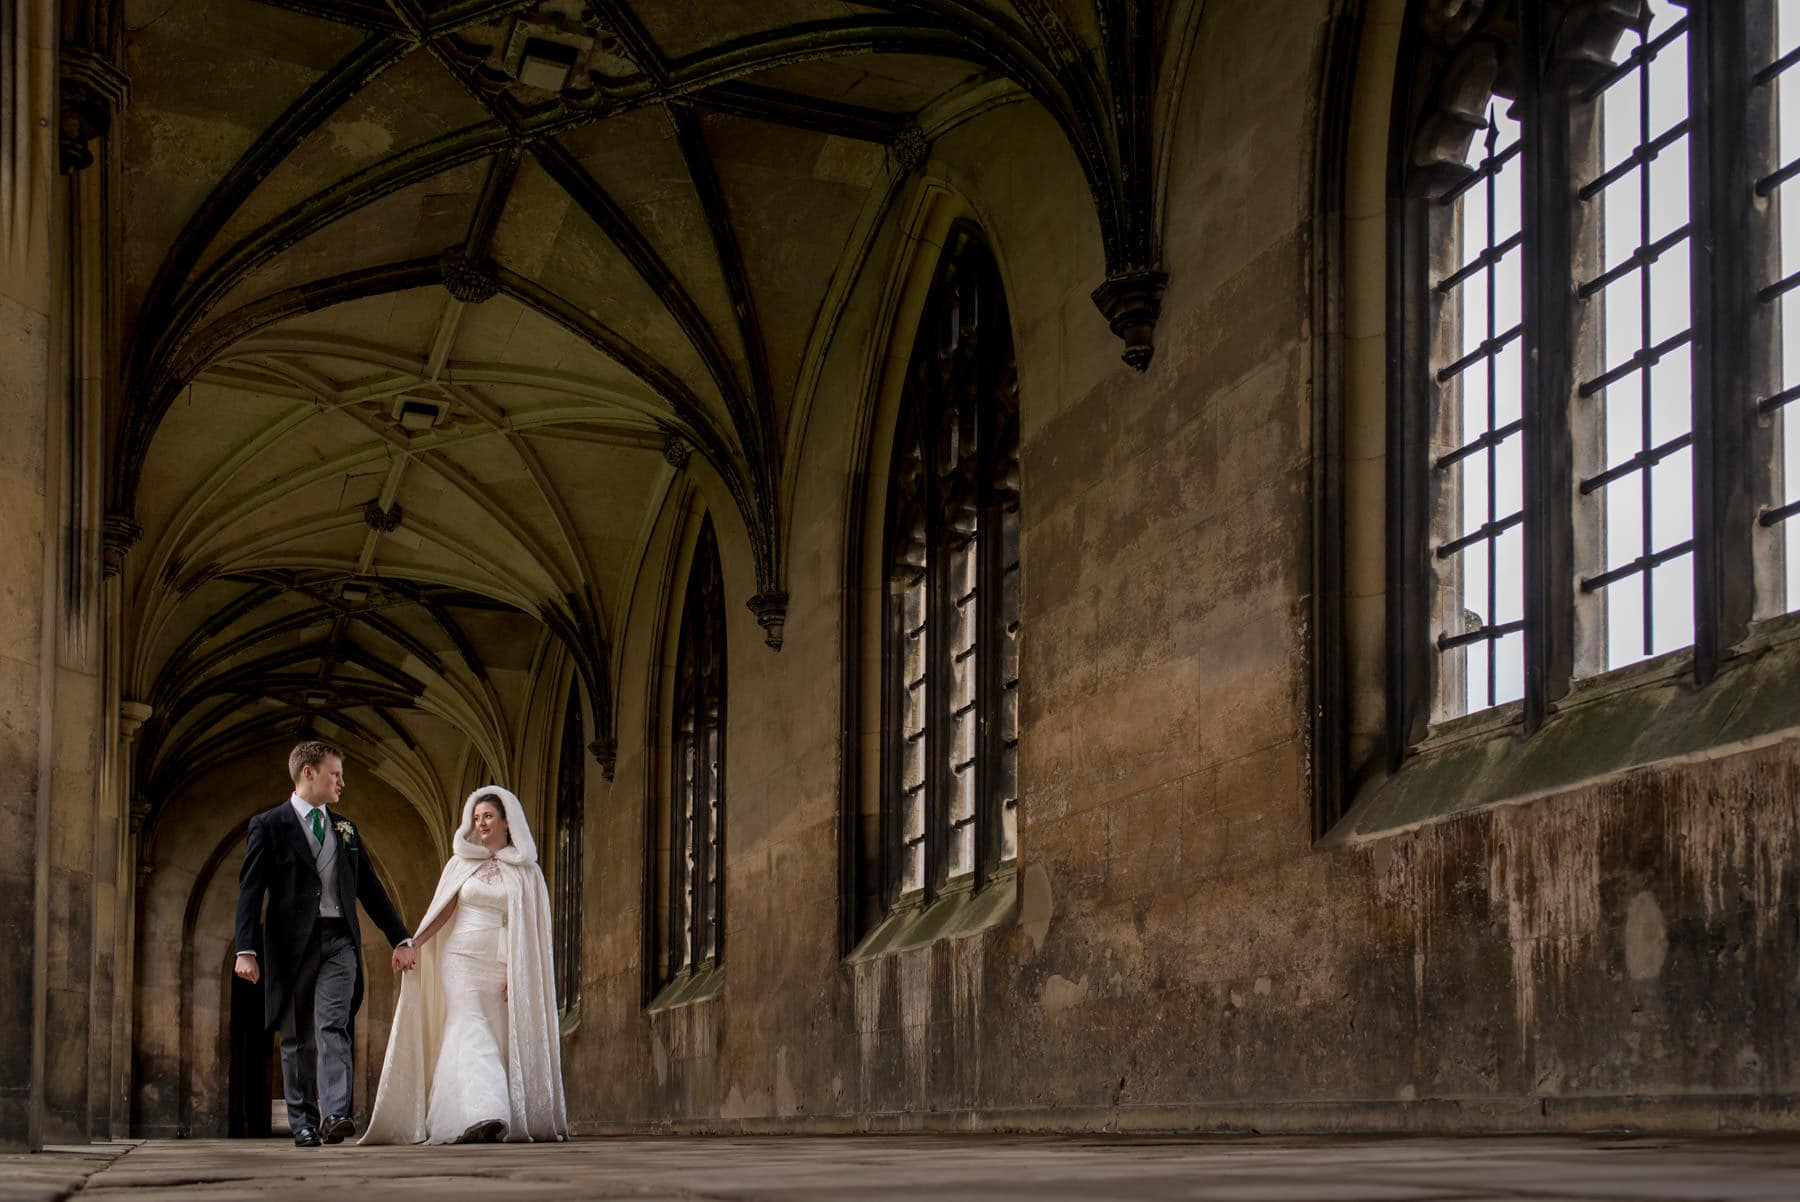 Game of throne themed bridal portraits at St John's College Cambridge